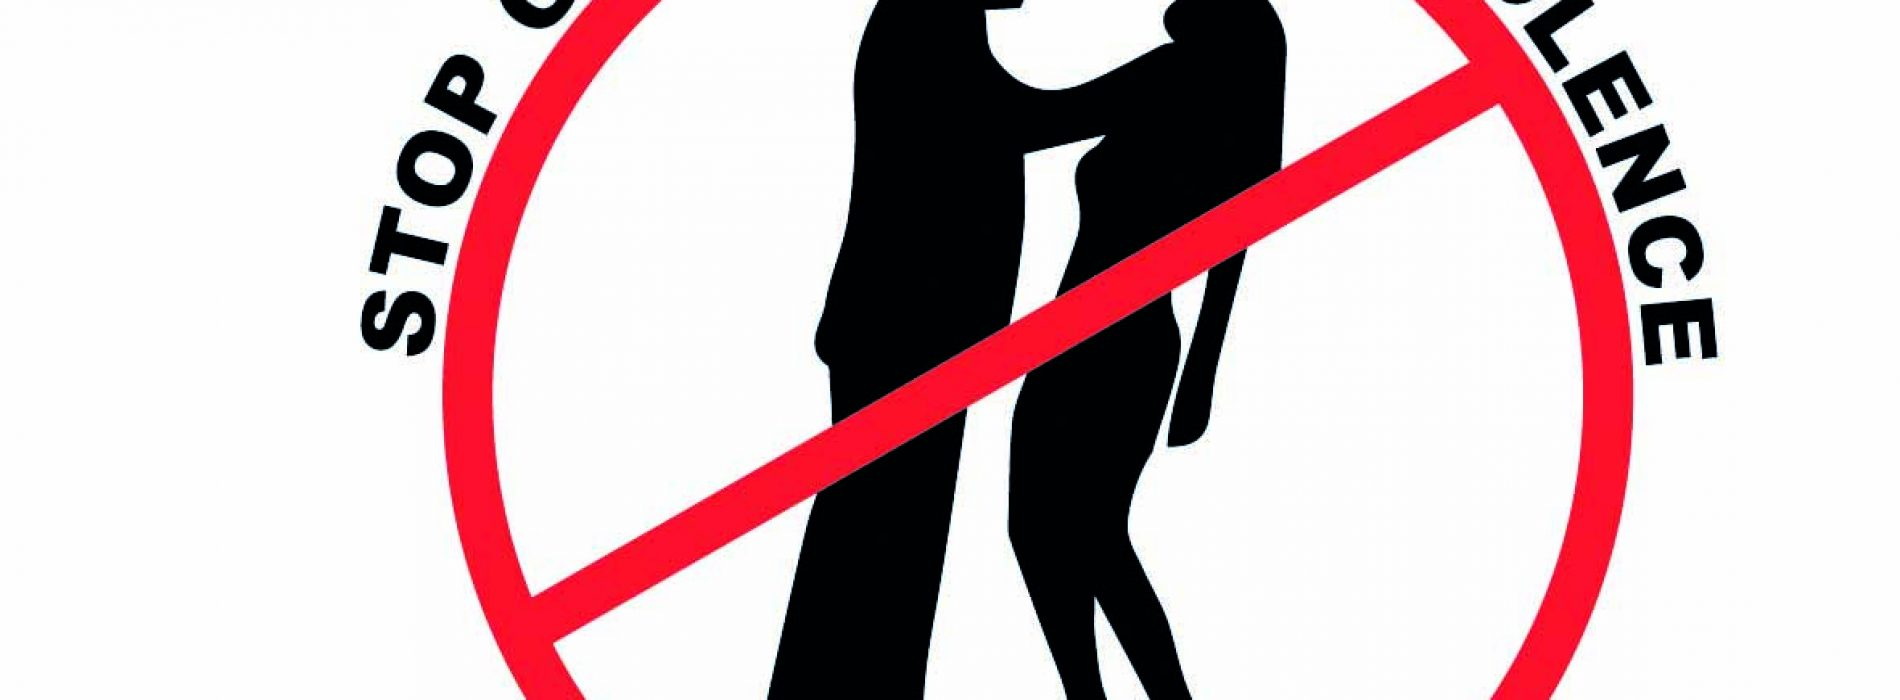 Gender violence in clipart clipart black and white library Fight gender-based violence | The Post clipart black and white library